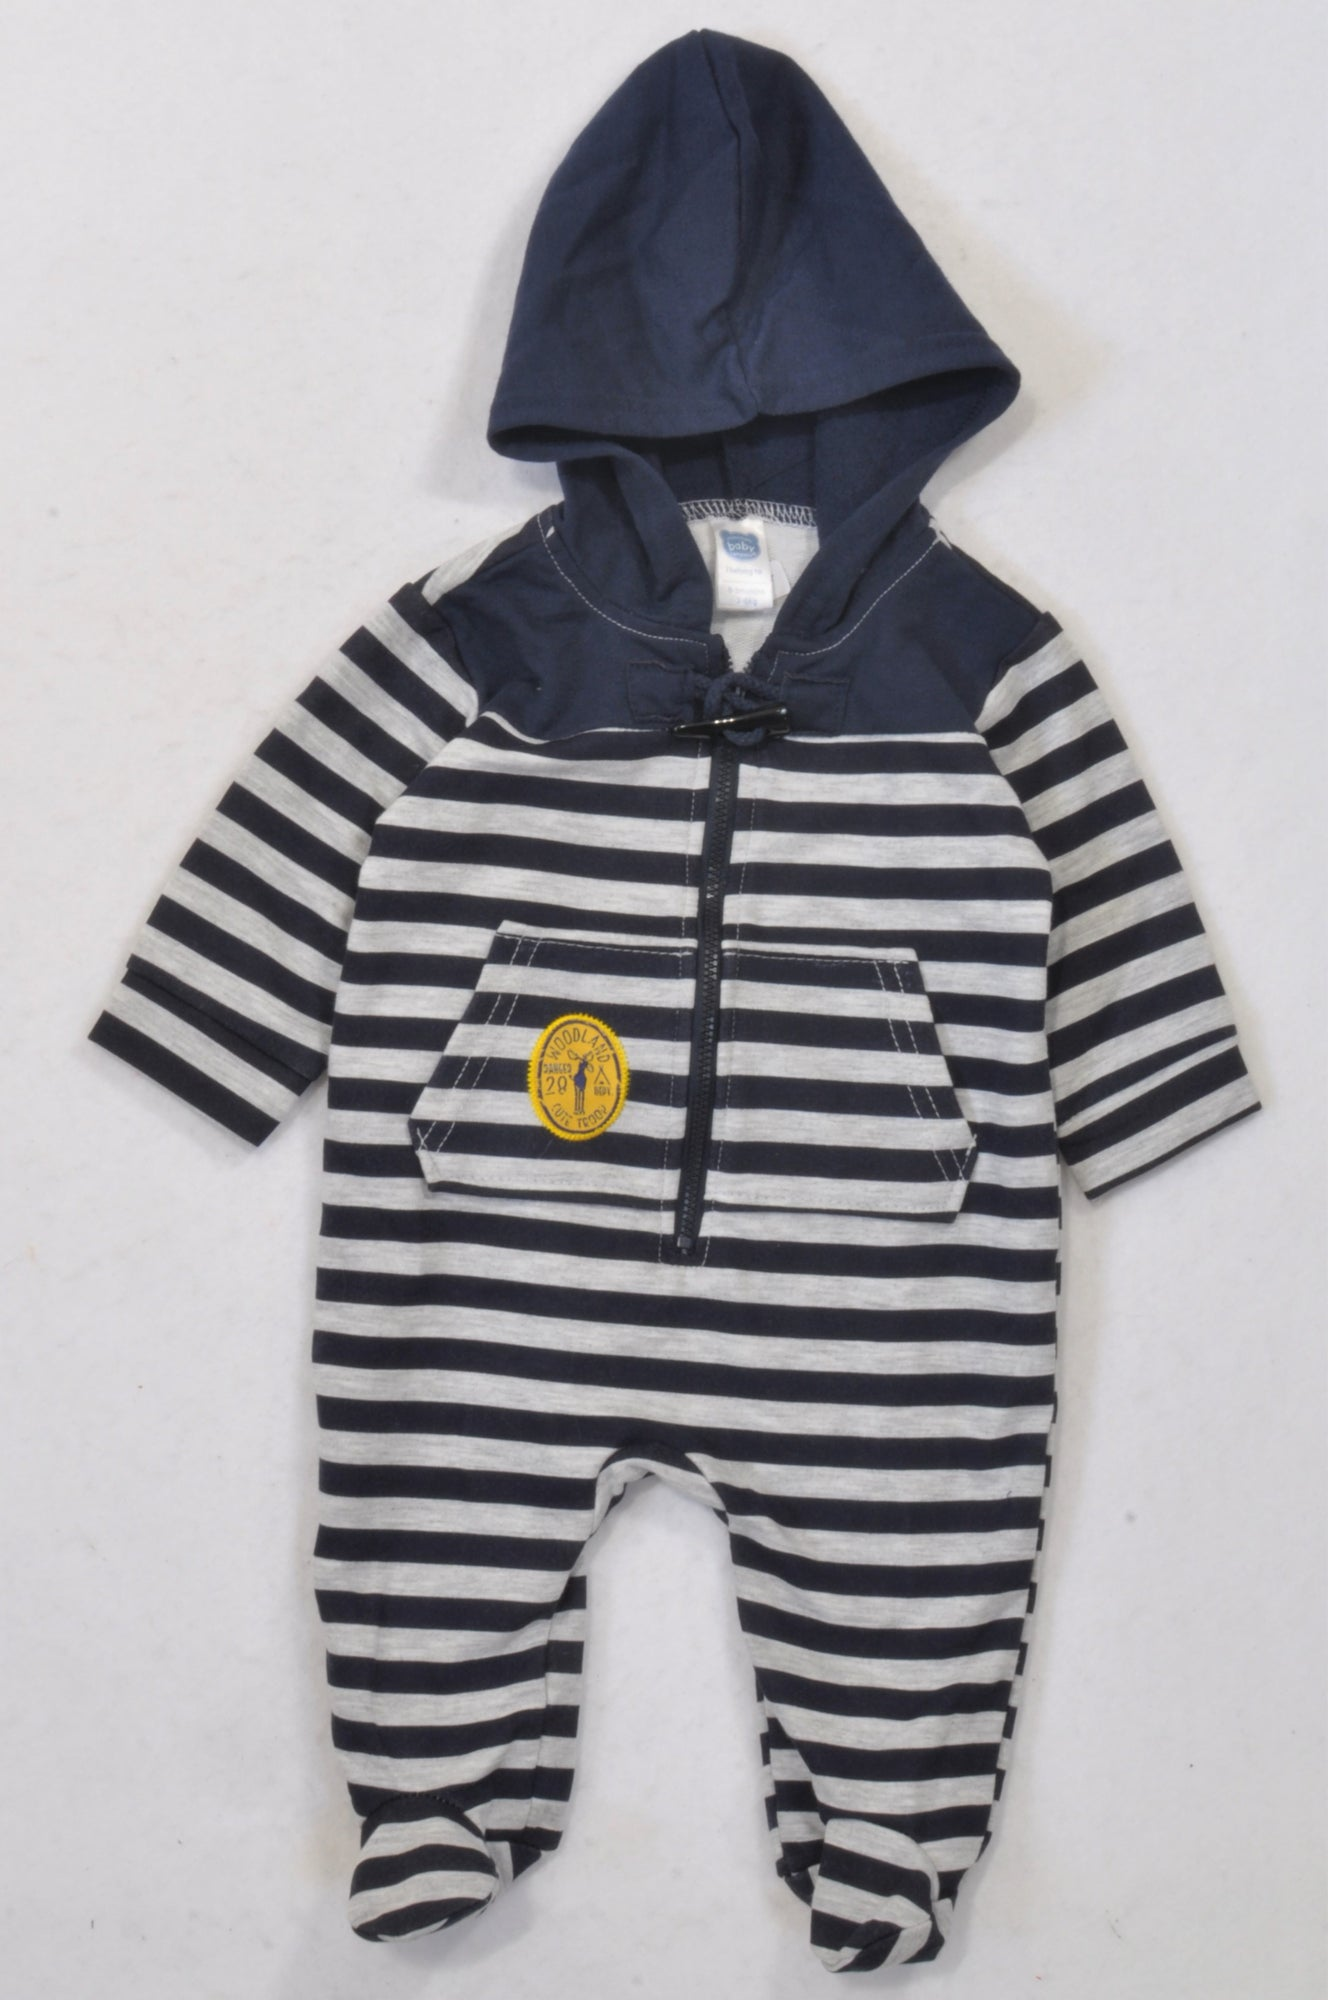 Ackermans Navy & Grey Striped Toggle Hooded Onesie Boys 0-3 months